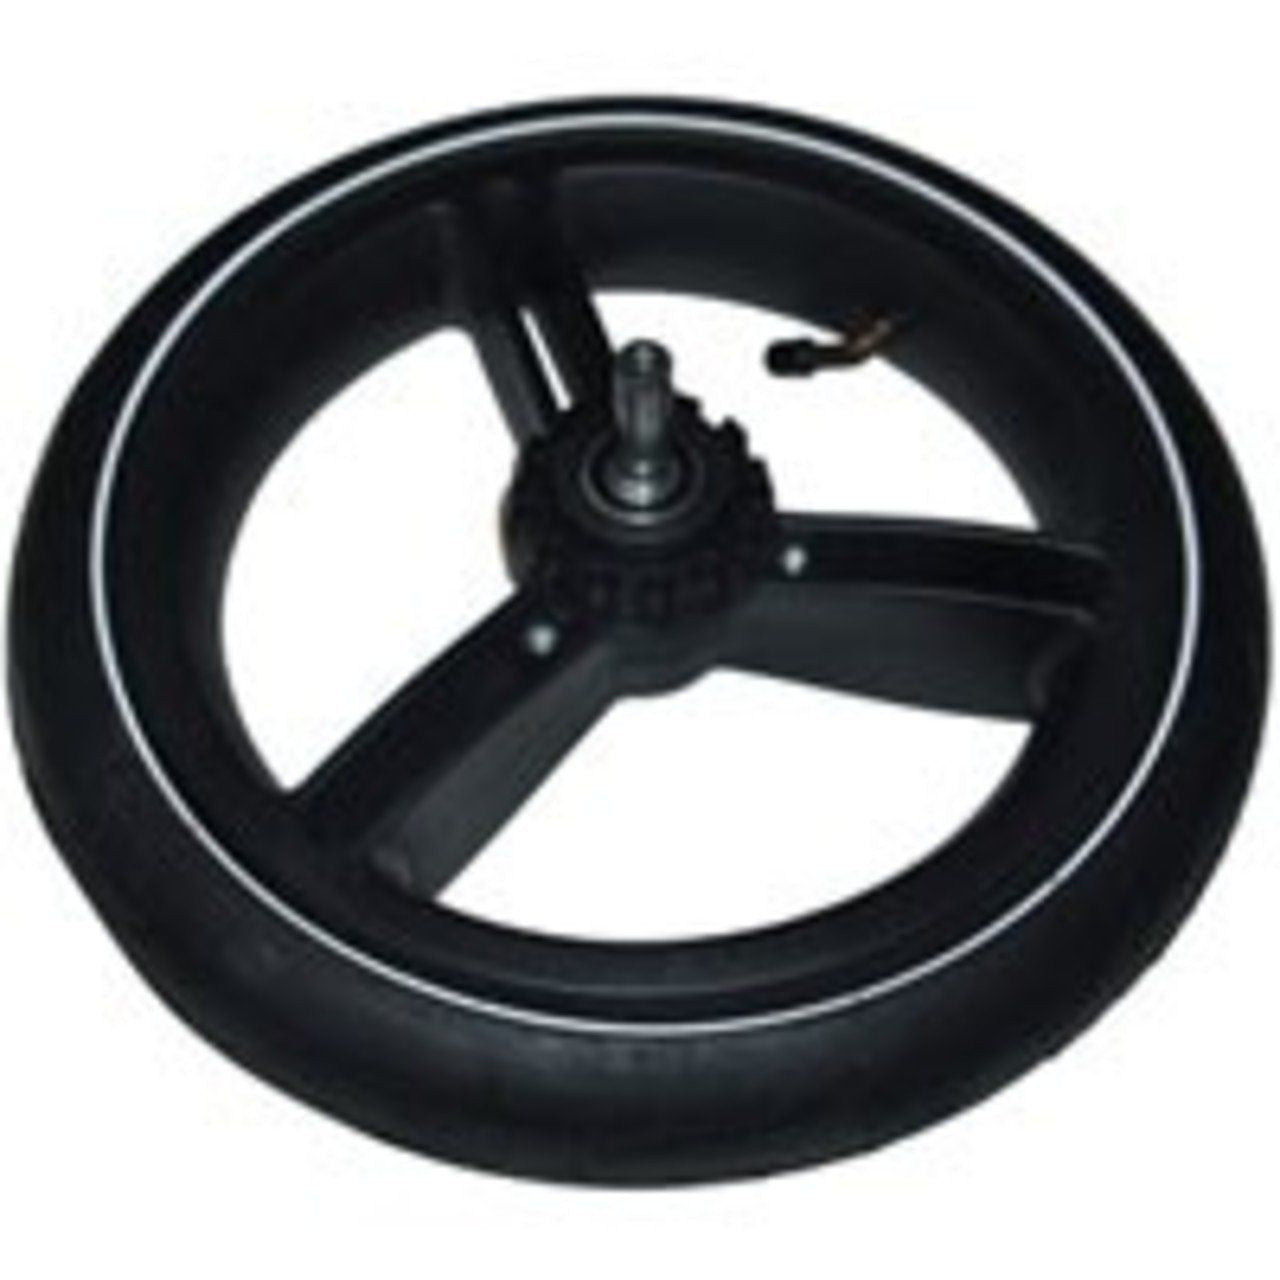 Phil & Teds Complete Rear Wheel, Tire, Tube for Vibe and Verve Strollers